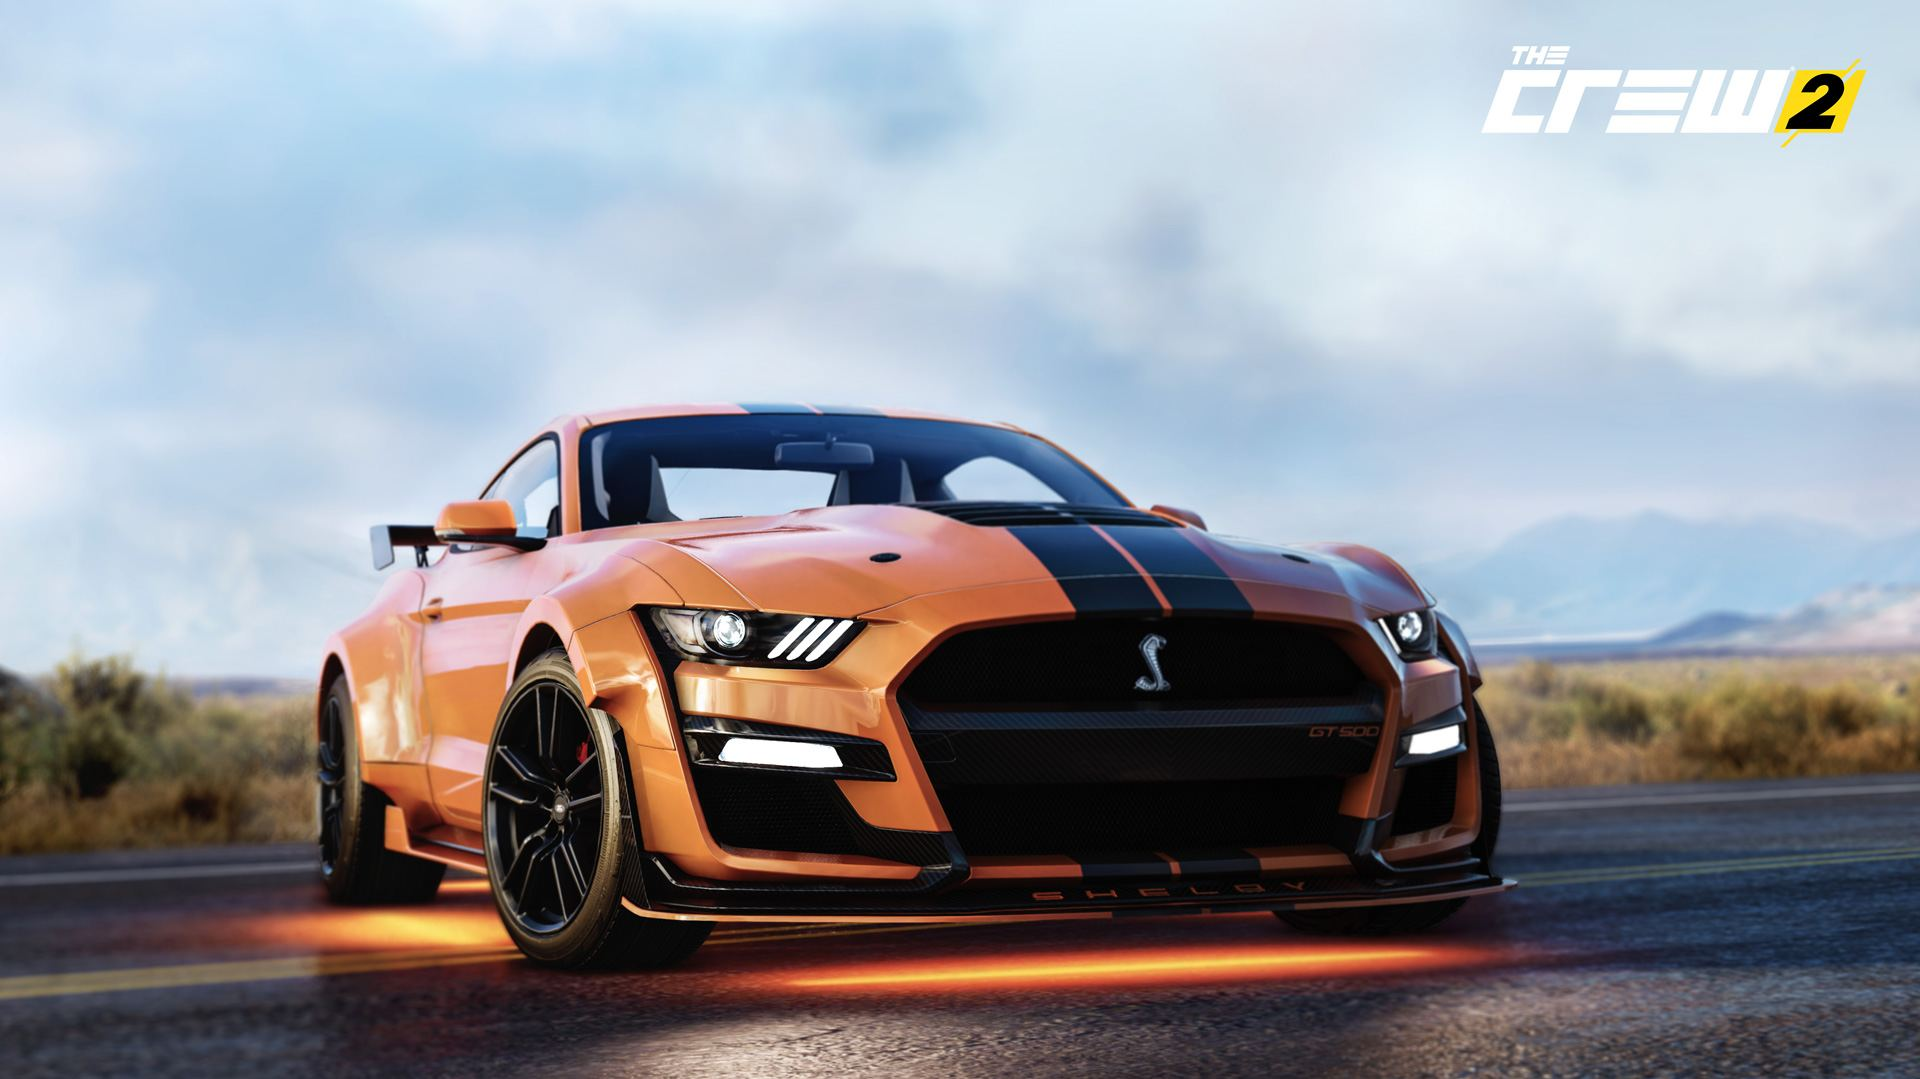 The Crew 2 Inner Drive_TC2_TU6-MUSTANG_2020_1920x1080px